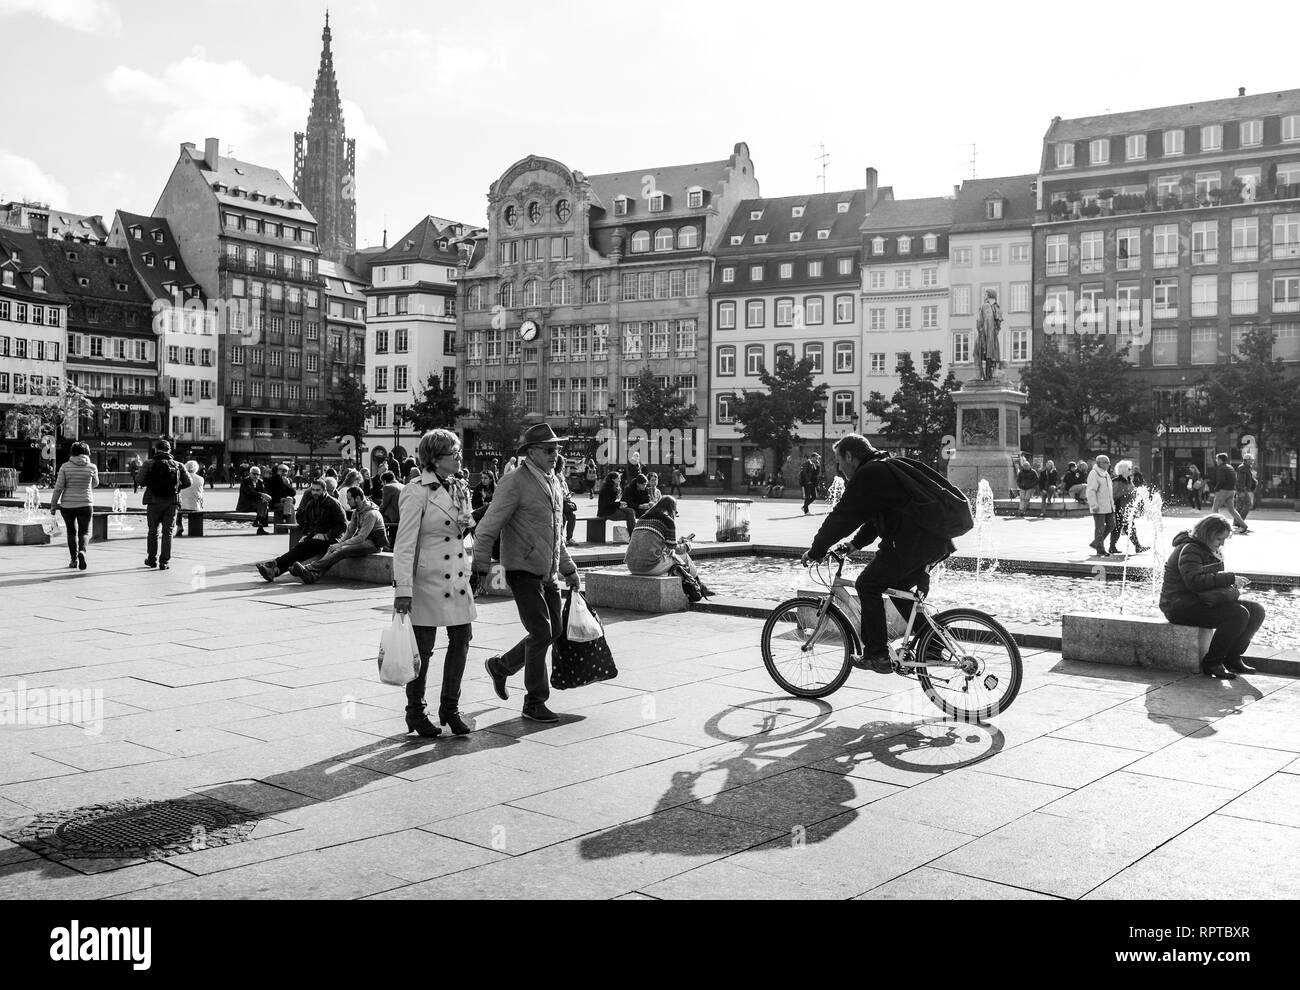 STRASBOURG, FRANCE - OCT 26, 2018: Strasbourg Place Kleber on a warm summer day with hundreds of people tourists and locals walking in the morning couple black and white - Stock Image